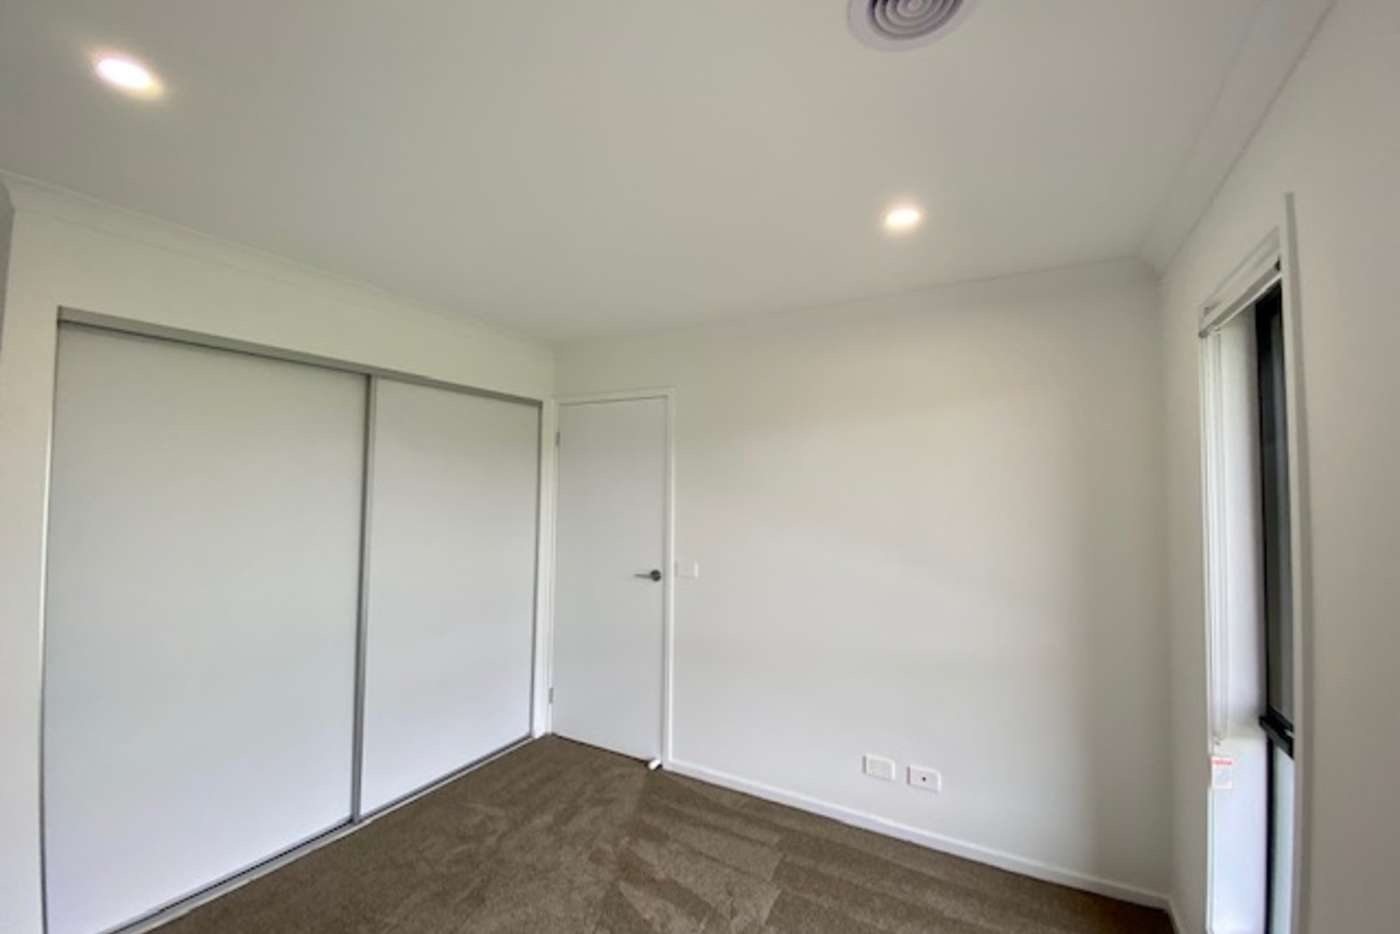 Sixth view of Homely house listing, 478 Casey Fields Boulevard, Cranbourne East VIC 3977